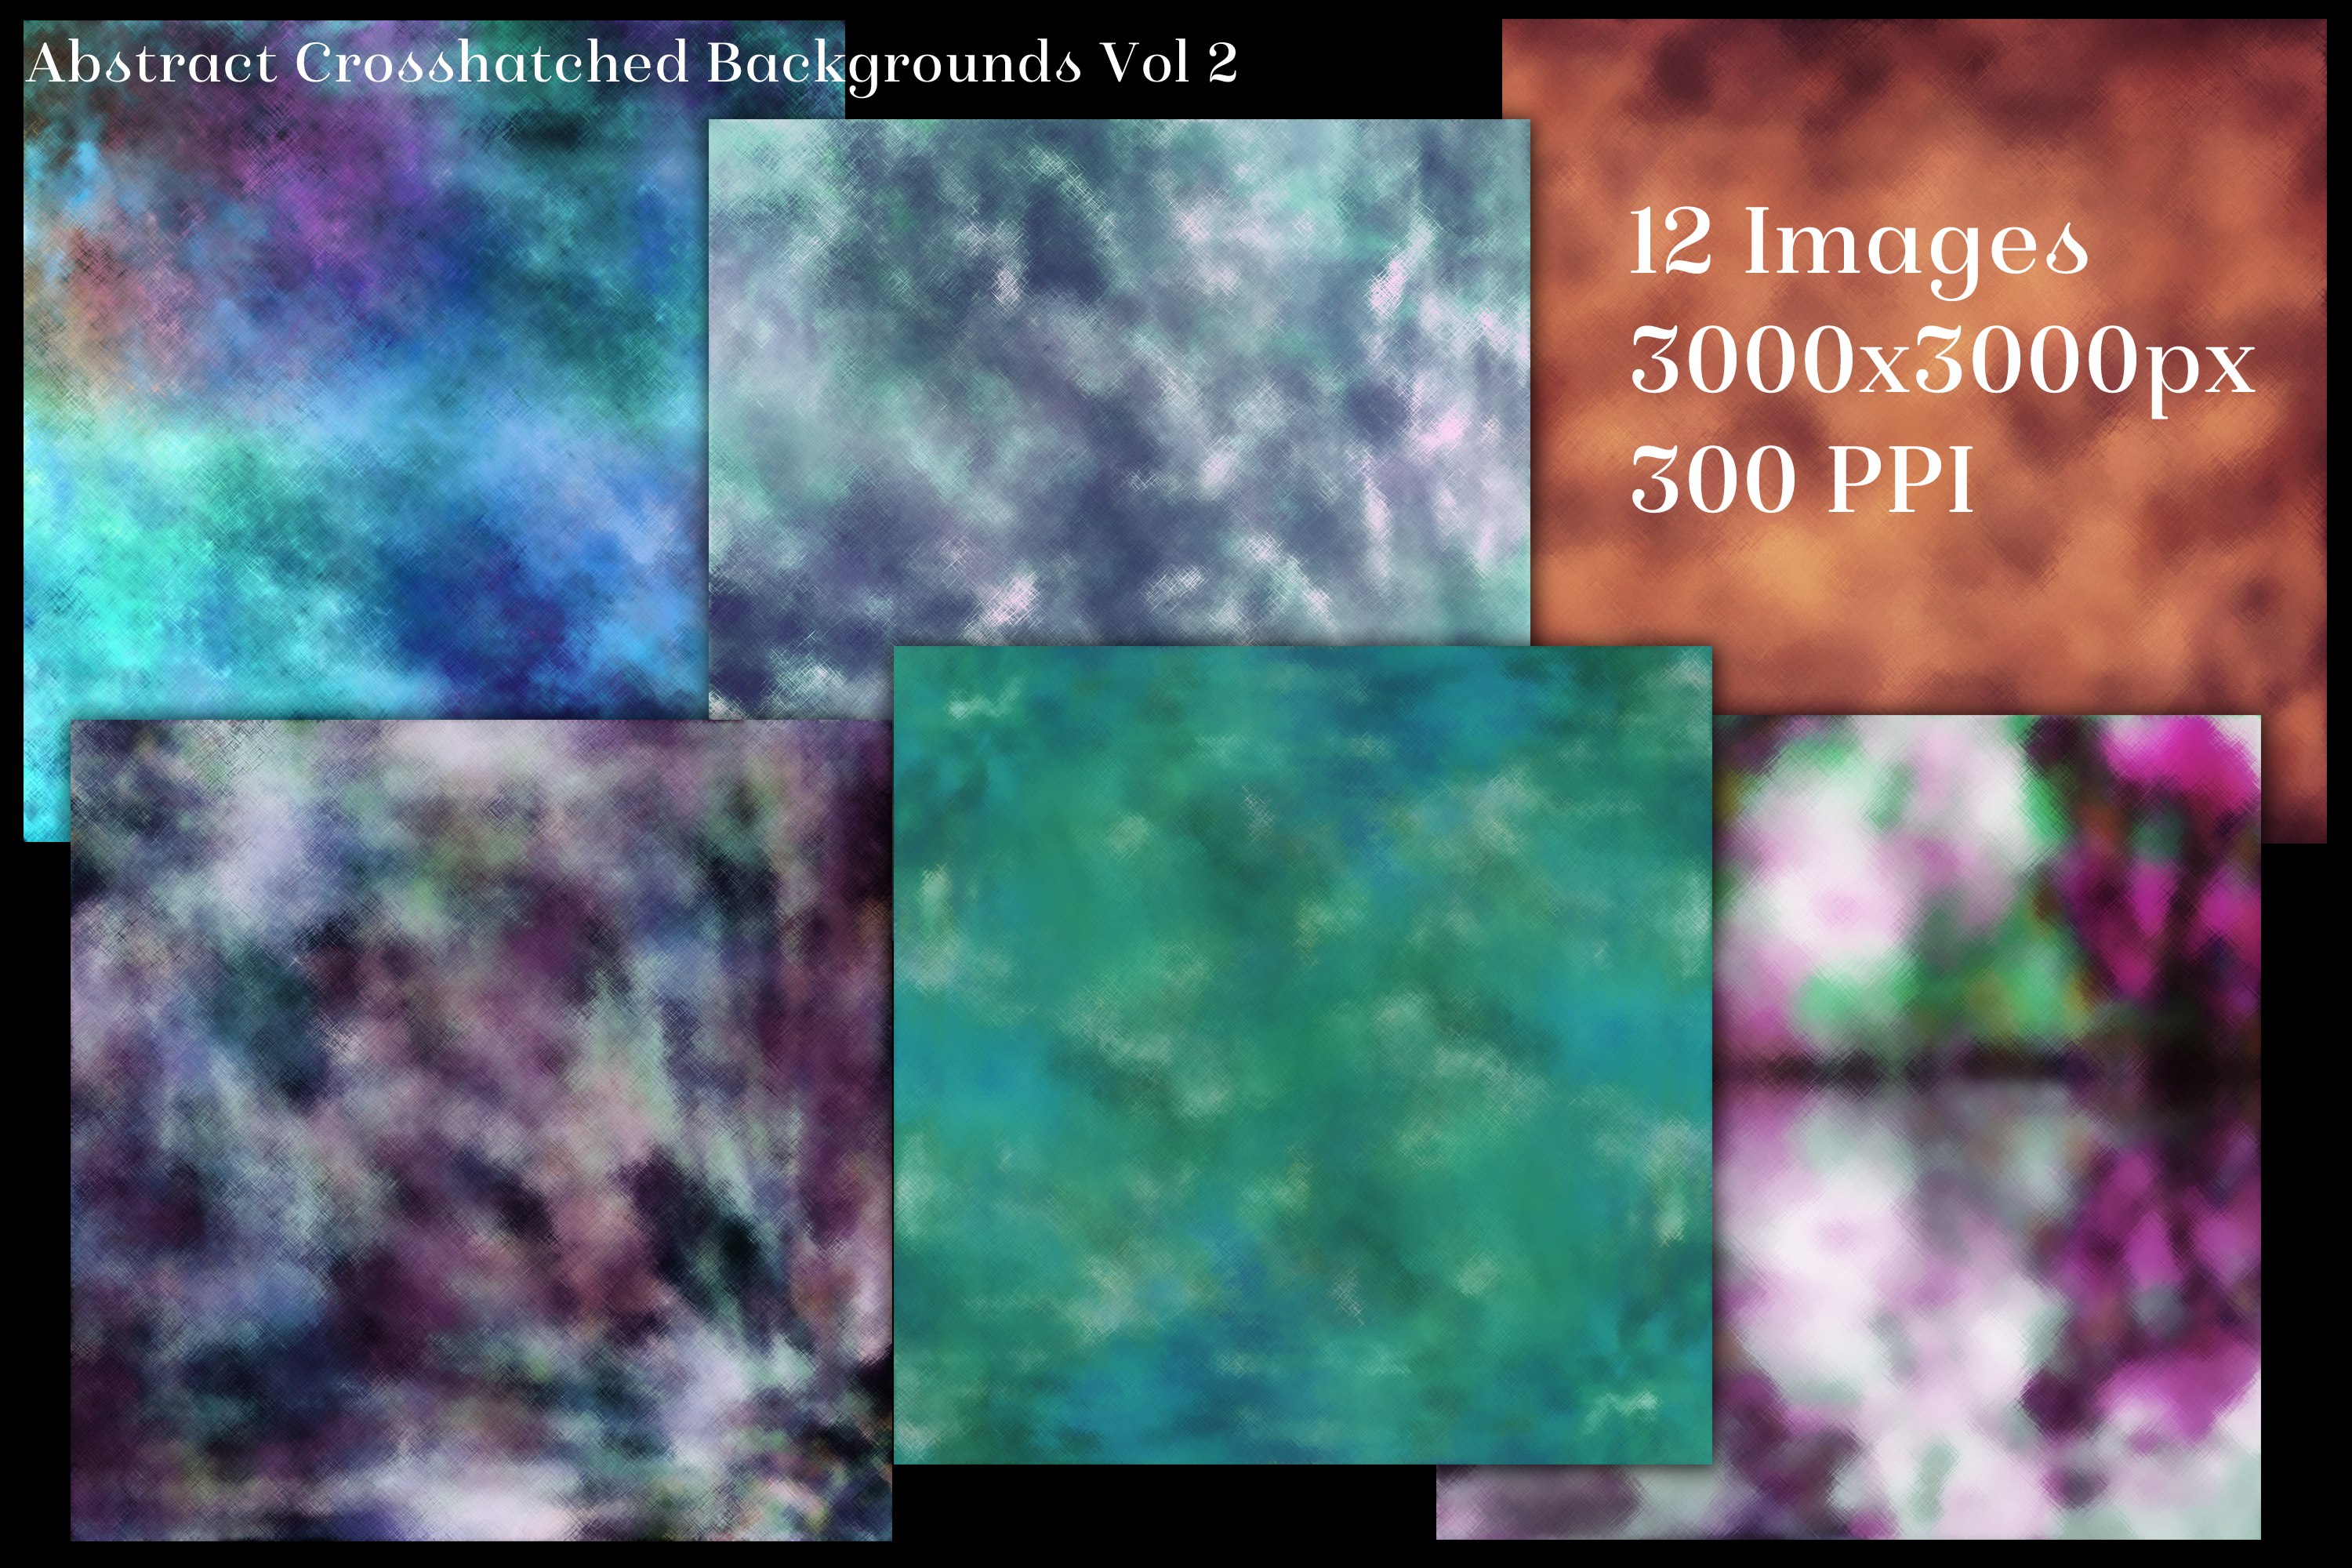 Abstract Crosshatched Backgrounds Vol 2 - 12 Image Textures example image 2